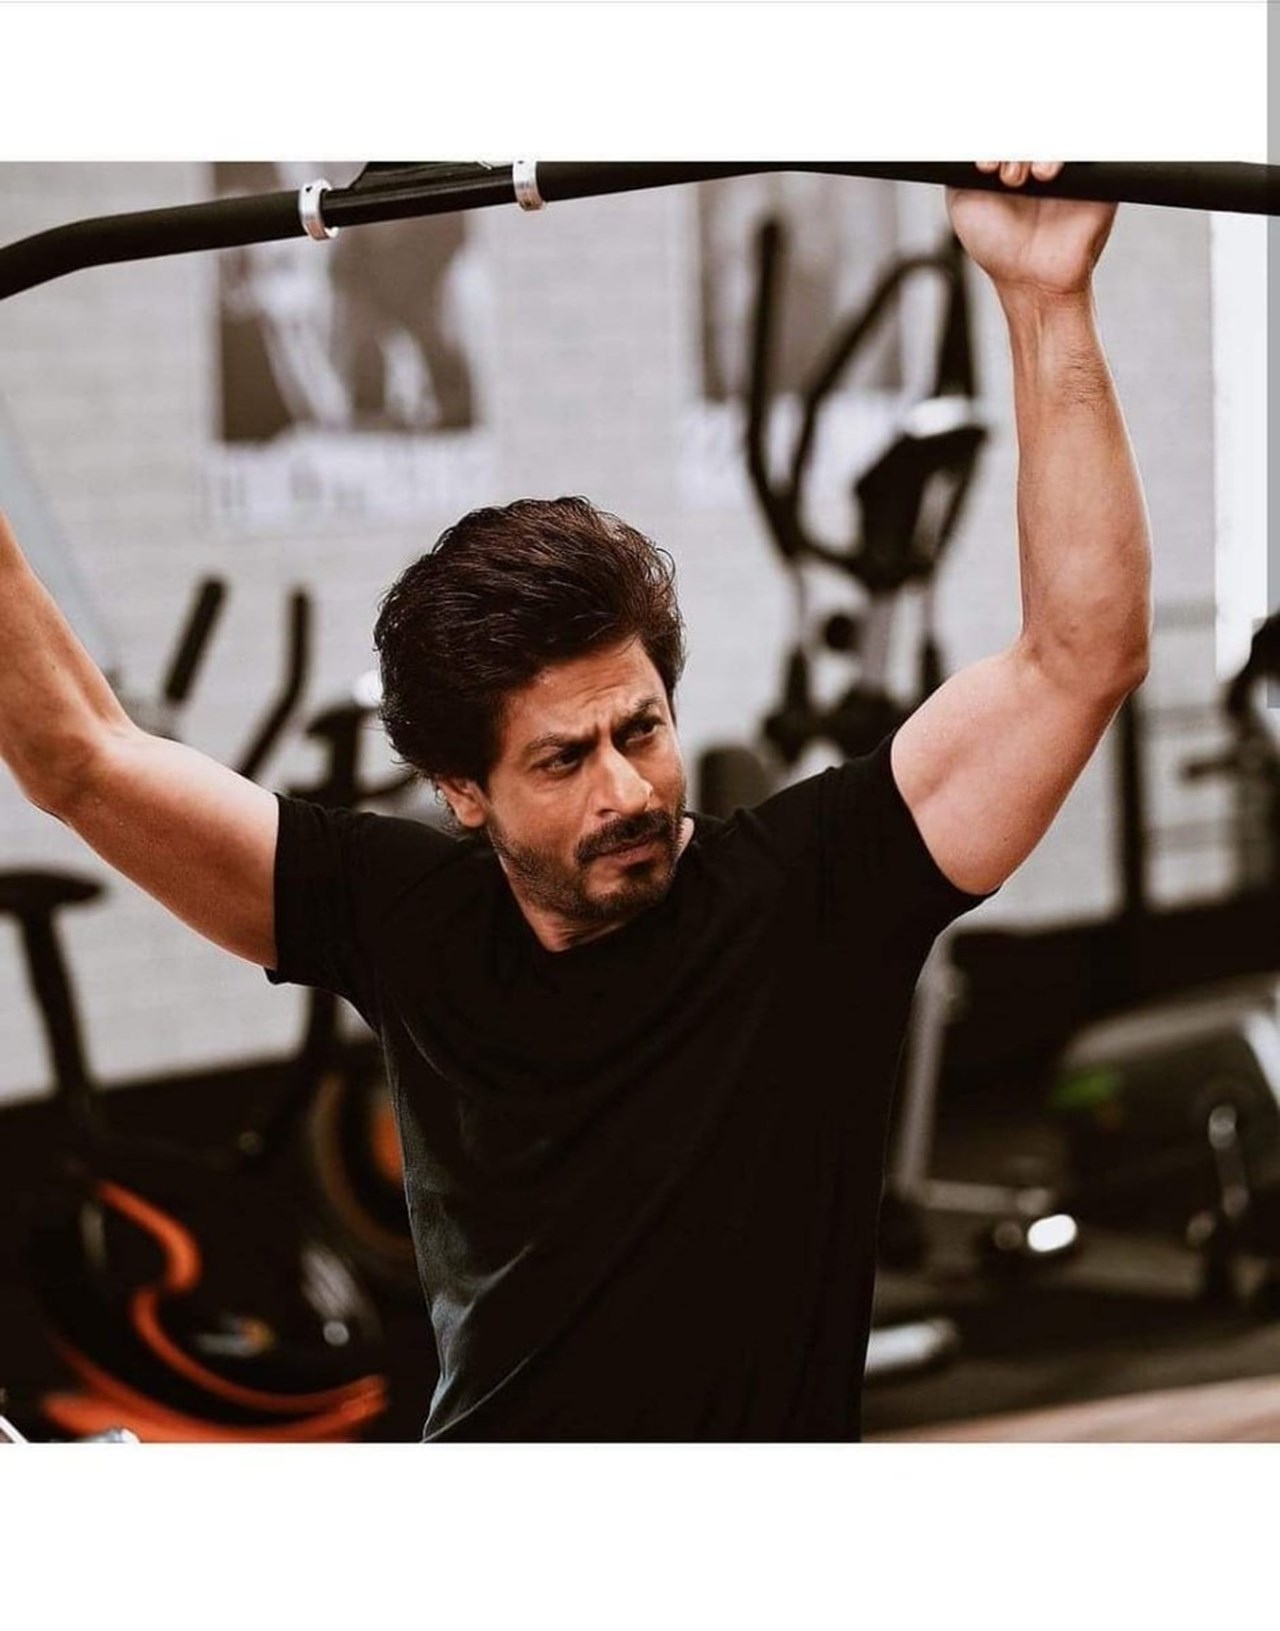 Always feel I am not good enough, therefore put efforts in work: Shah Rukh Khan